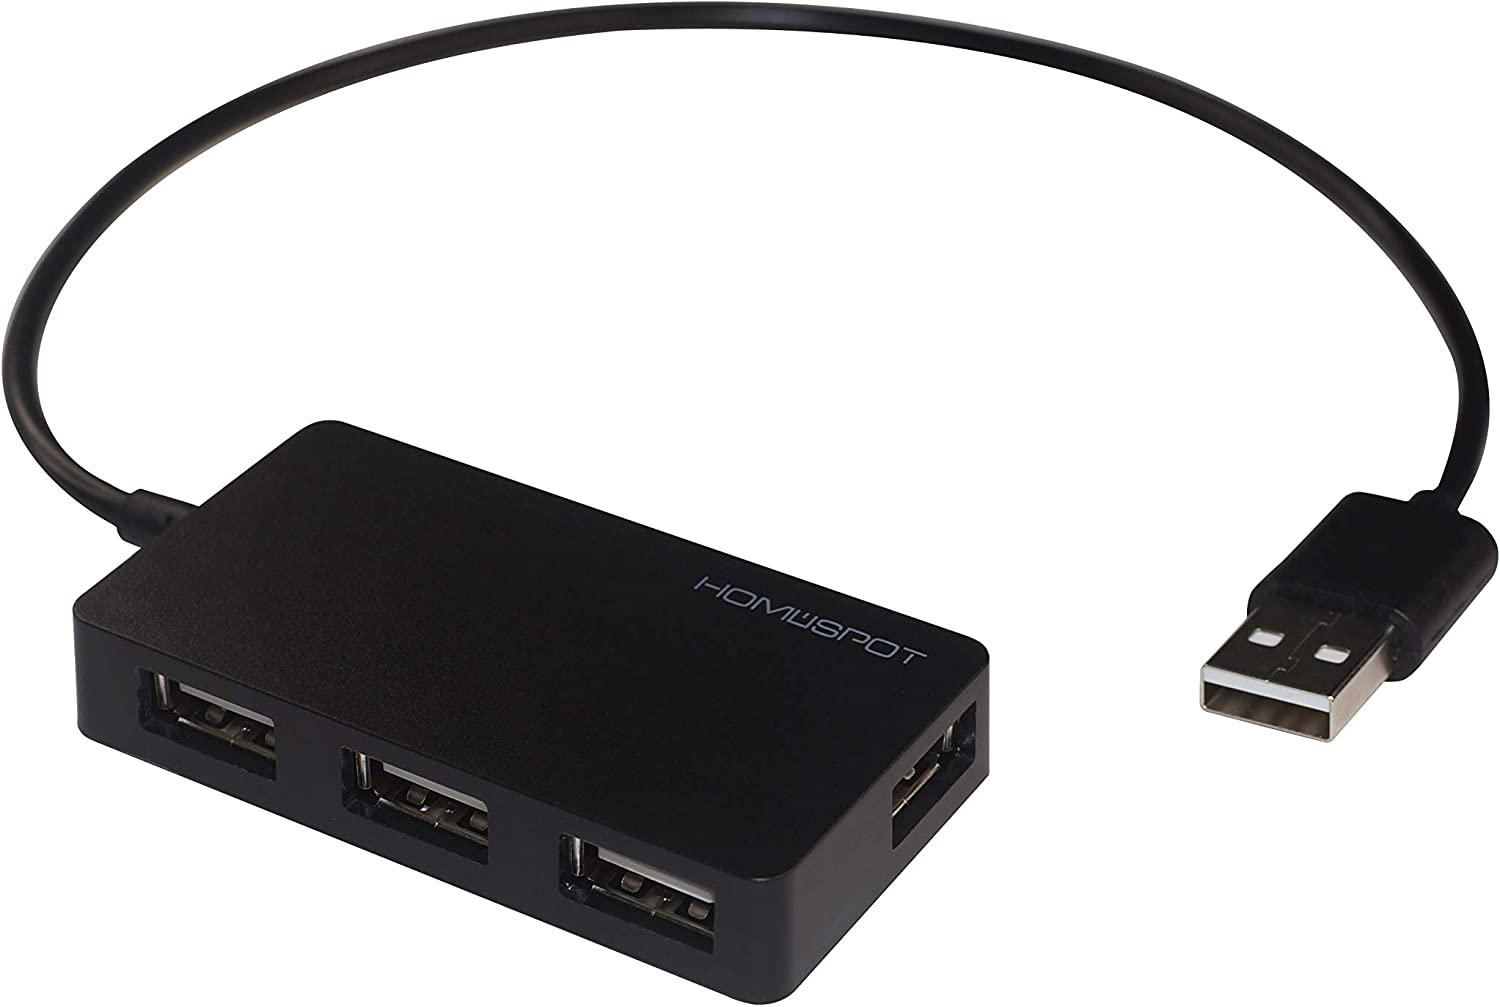 HomeSpot USB2.0 Hub 4-Port High Speed with Long Extension Cable Compatible with Windows 7/8/10 OSX Linux